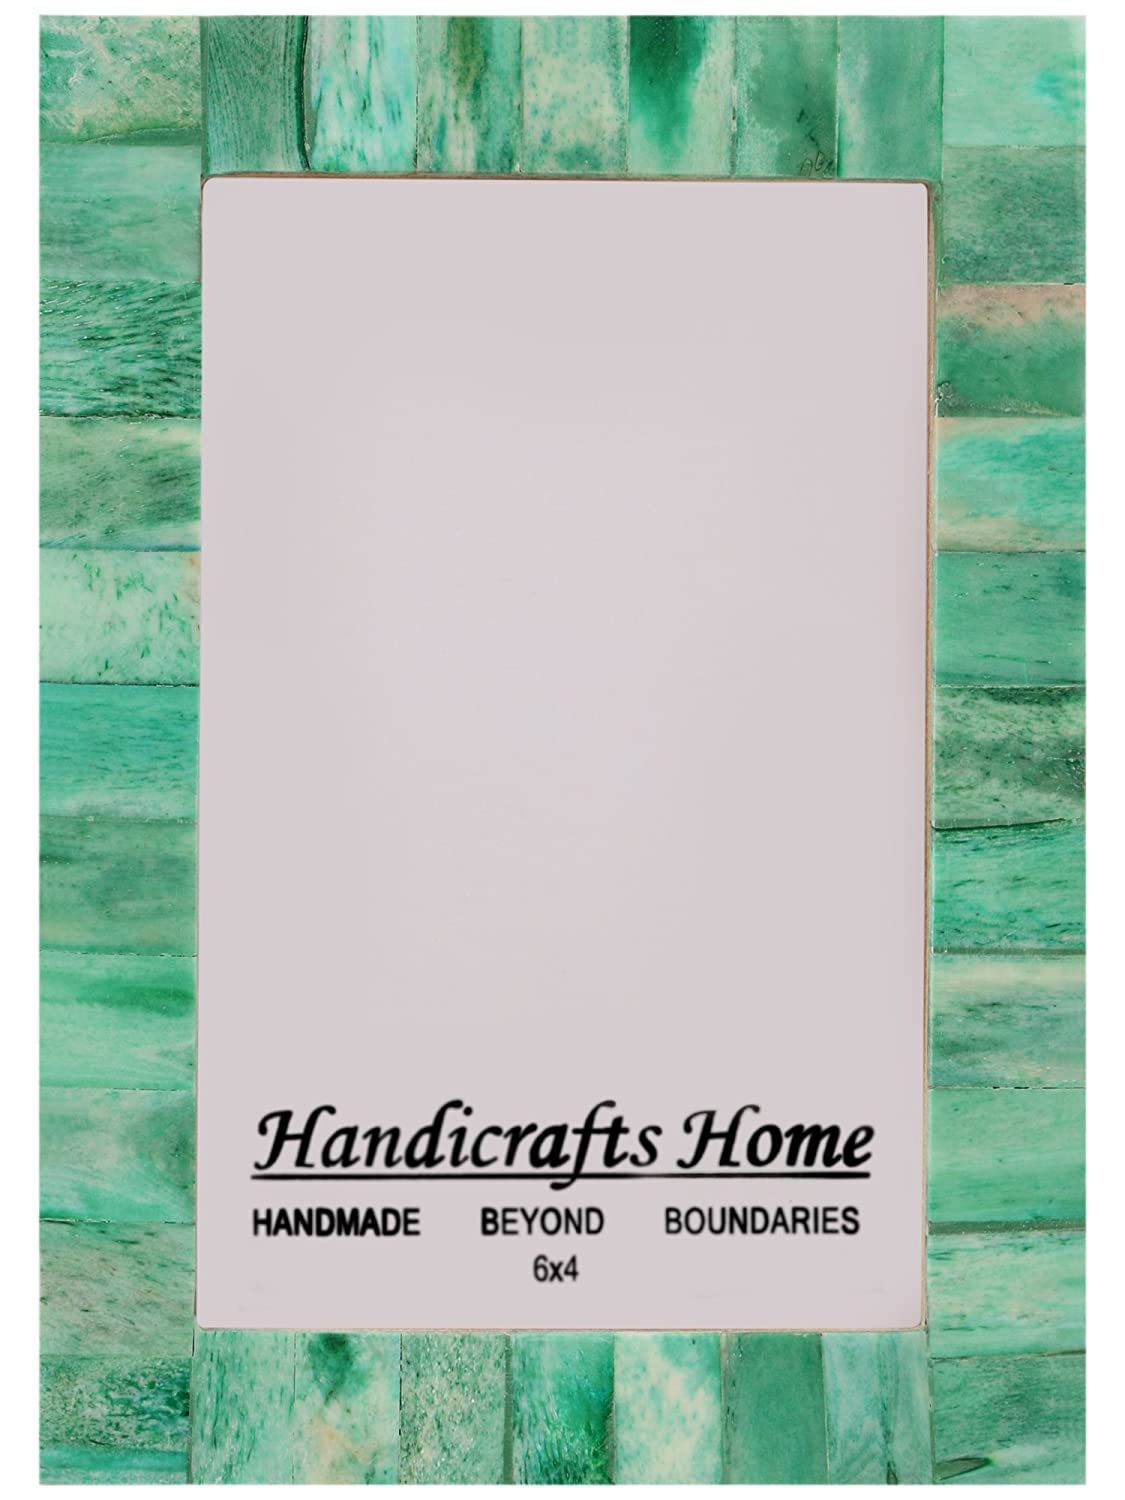 Picture Frames Photo Frame Sale Chic Shabby Vintage Wooden Handicrafts Hoome Handmade Natural Bone Classic Size 4x6 5x7 inch (4 x 6, Grey) Handicrafts Home